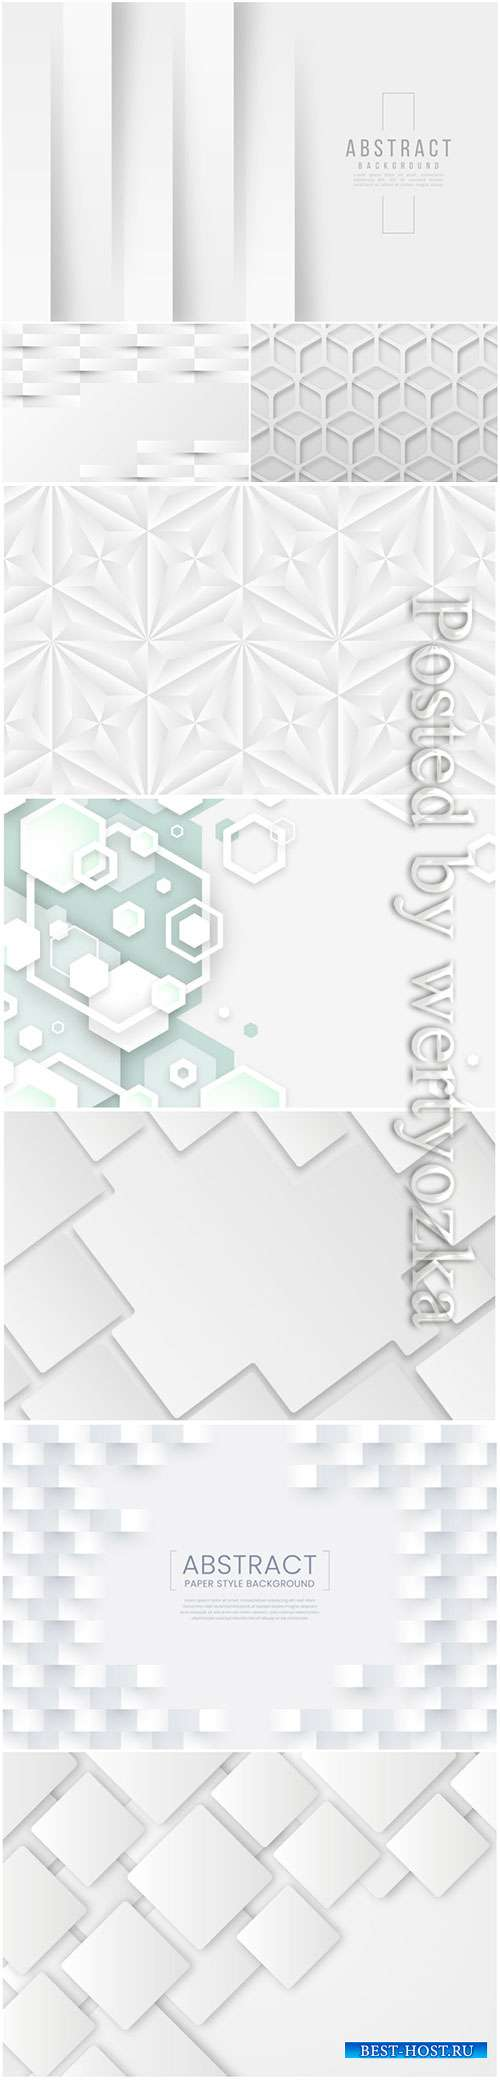 Abstract vector background, 3d models template # 9